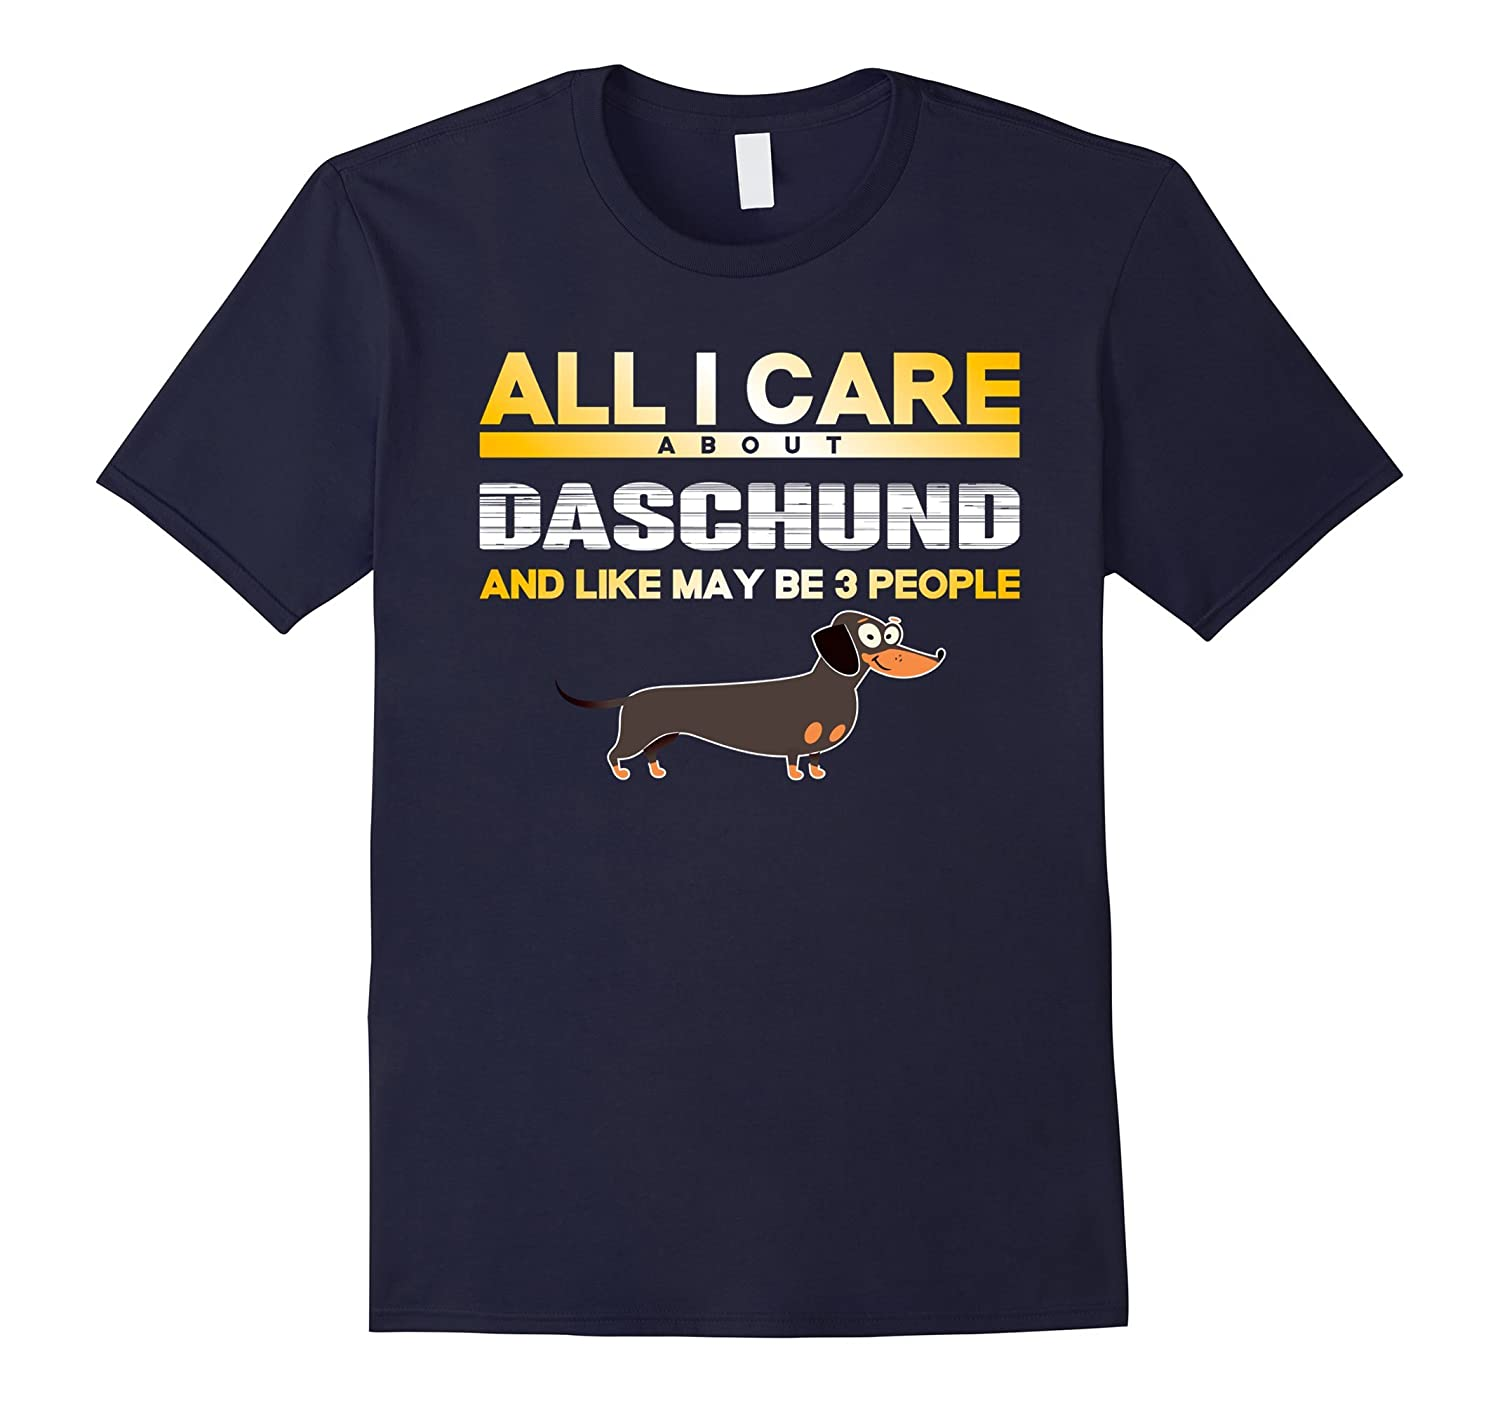 All I Care About Daschund And Like May Be 3 People, funny t-Art